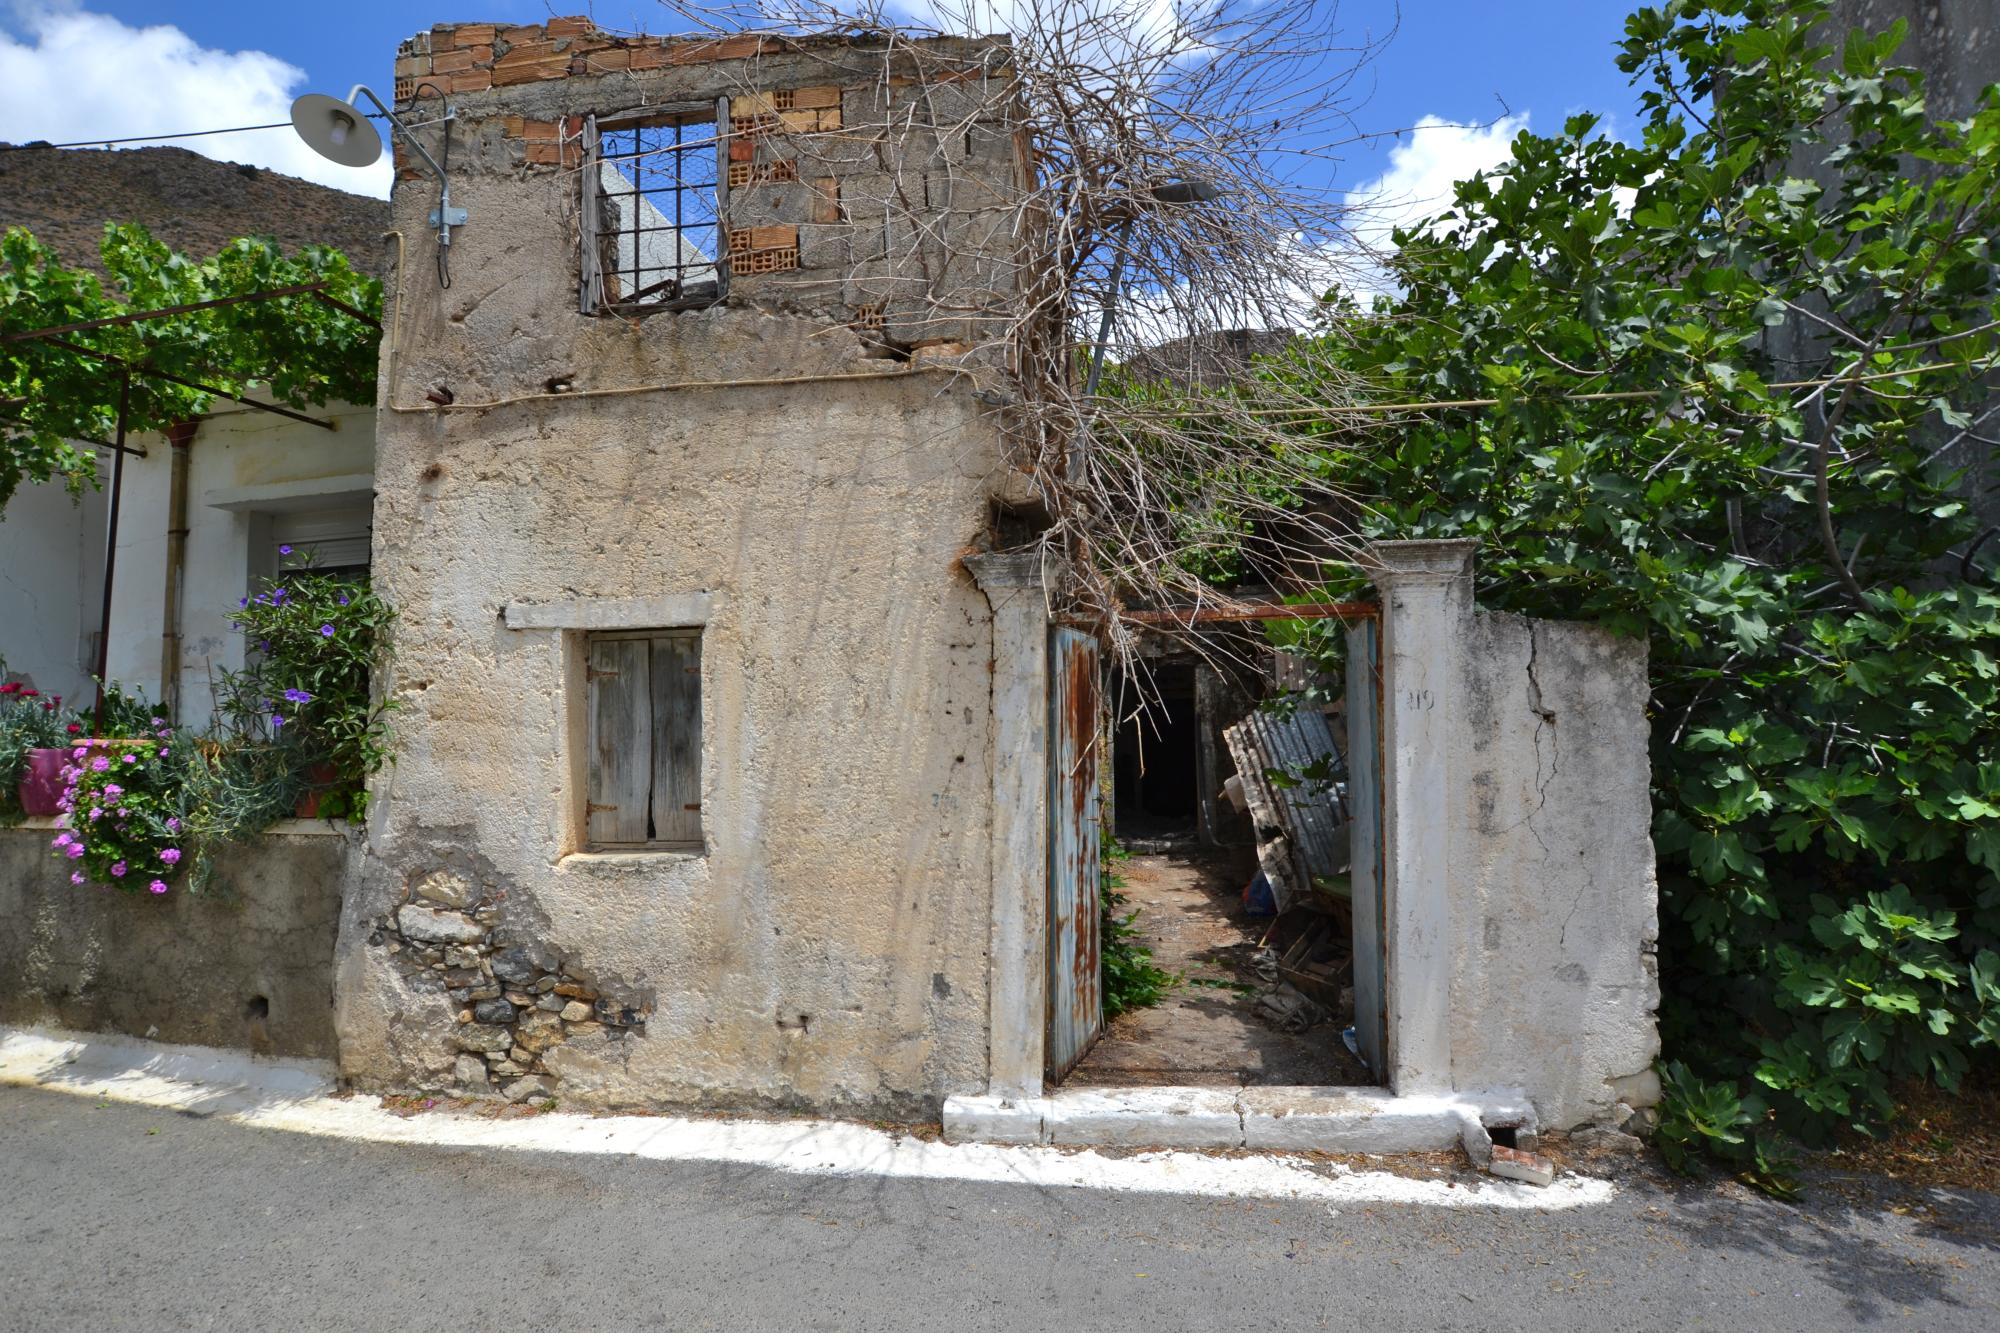 Old stone house with patio for renovation for sale in Limnes, Agios Nikolaos, Crete.